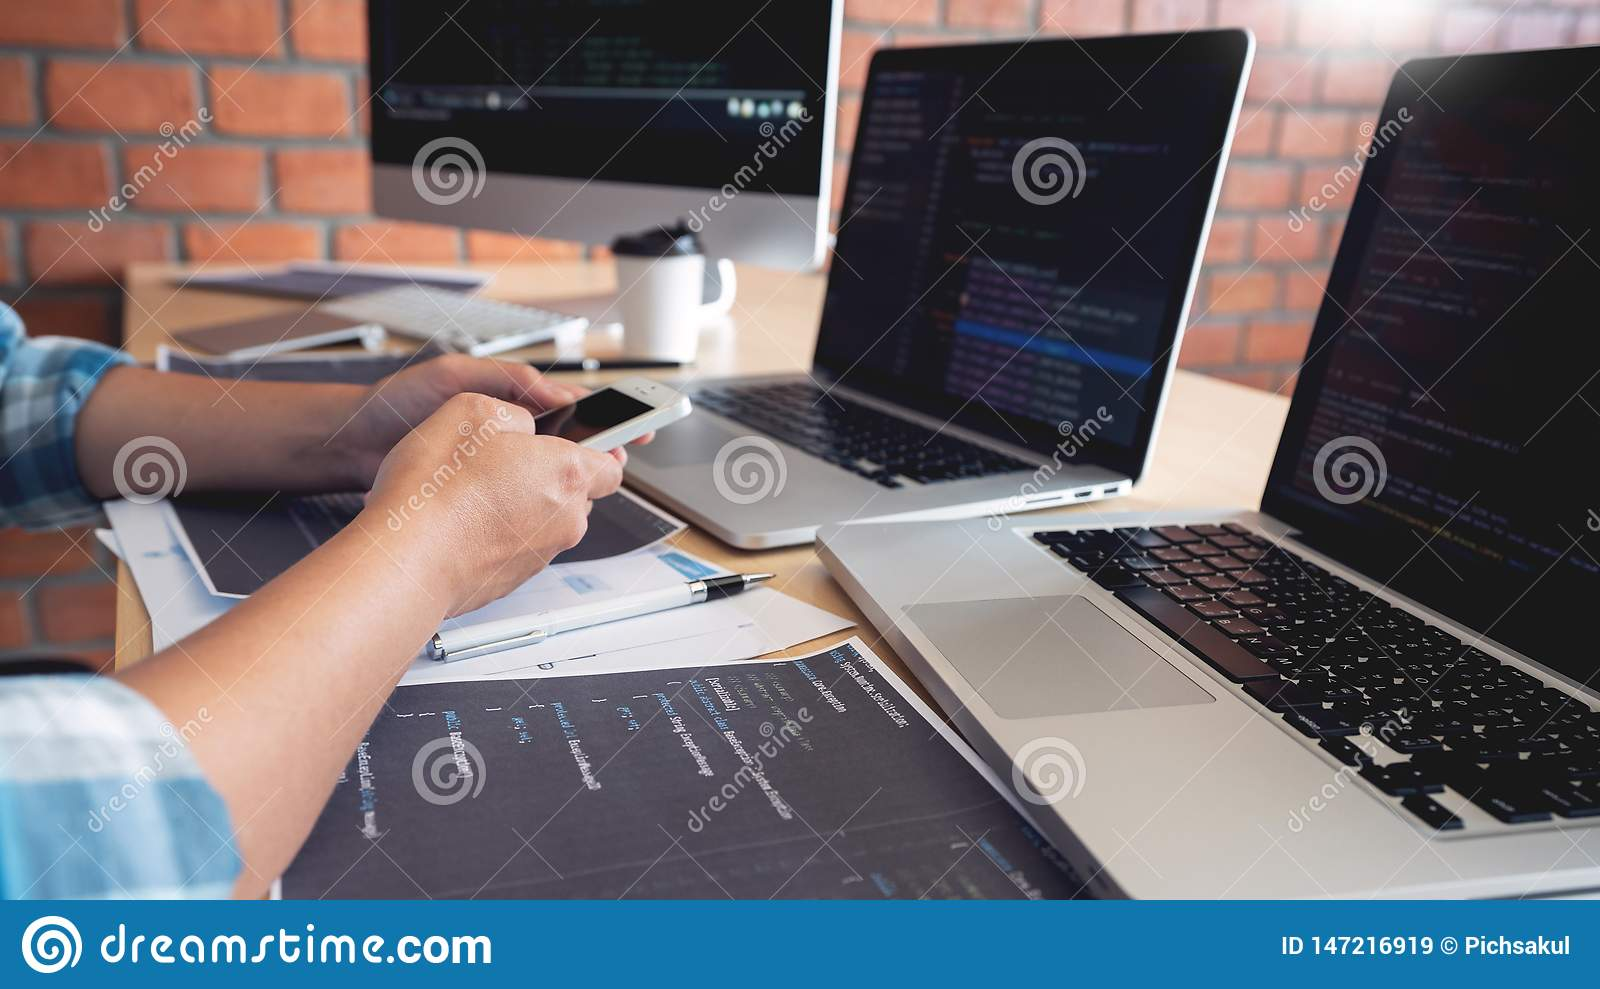 Collaborative work Software engineers website developer technologies or programmer working coding on startup ai application